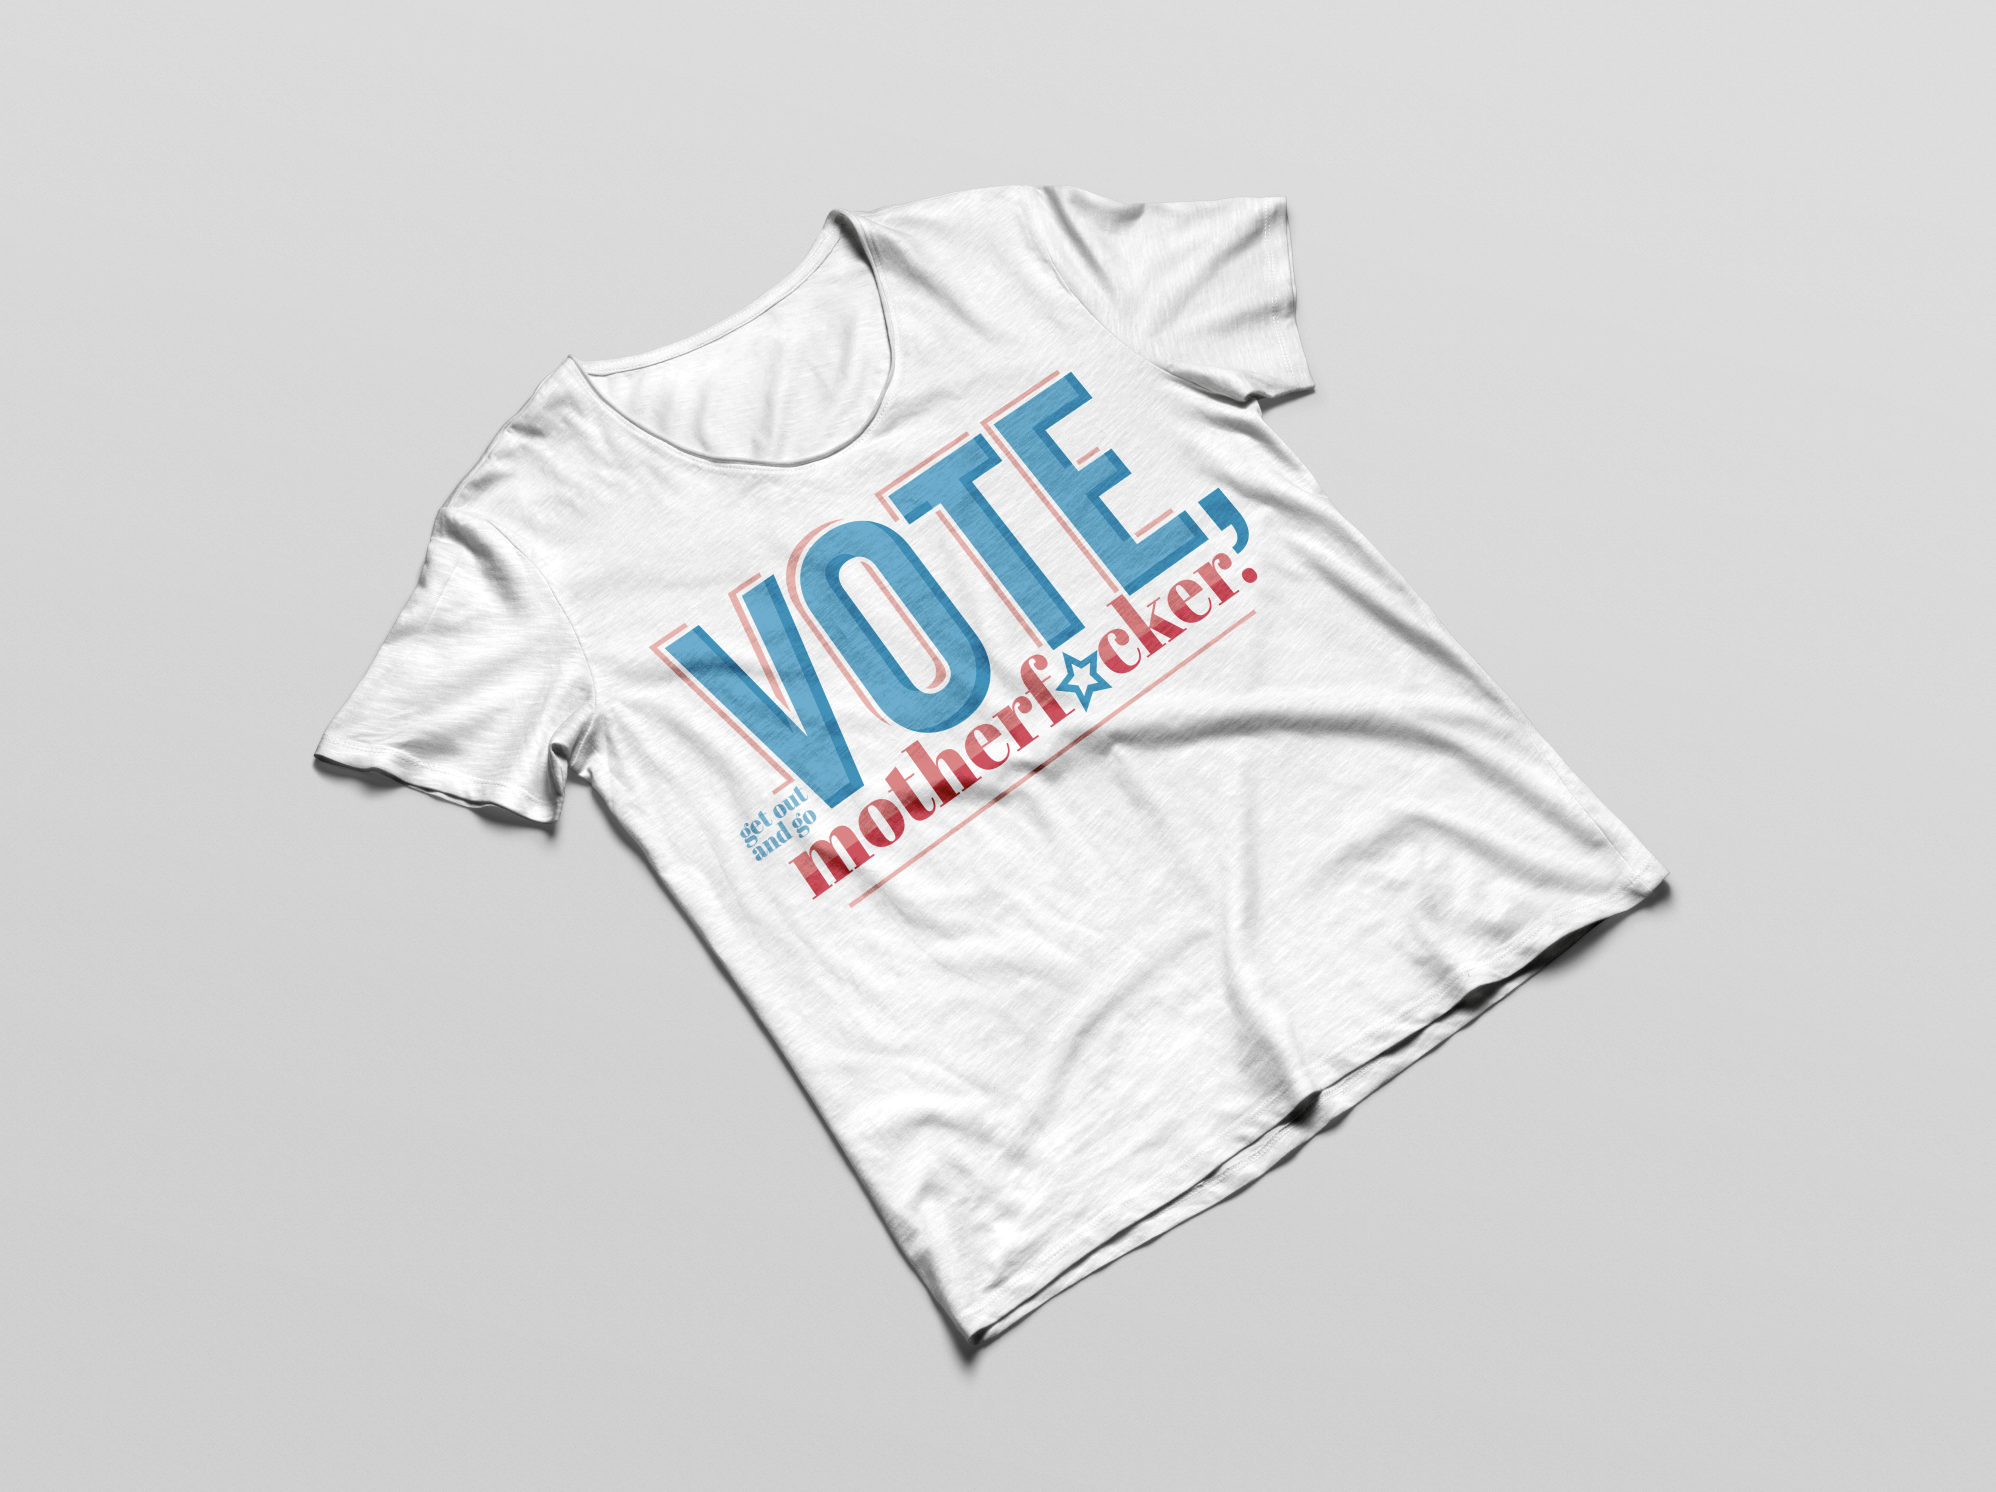 Friendly Reminder to Vote Shirt